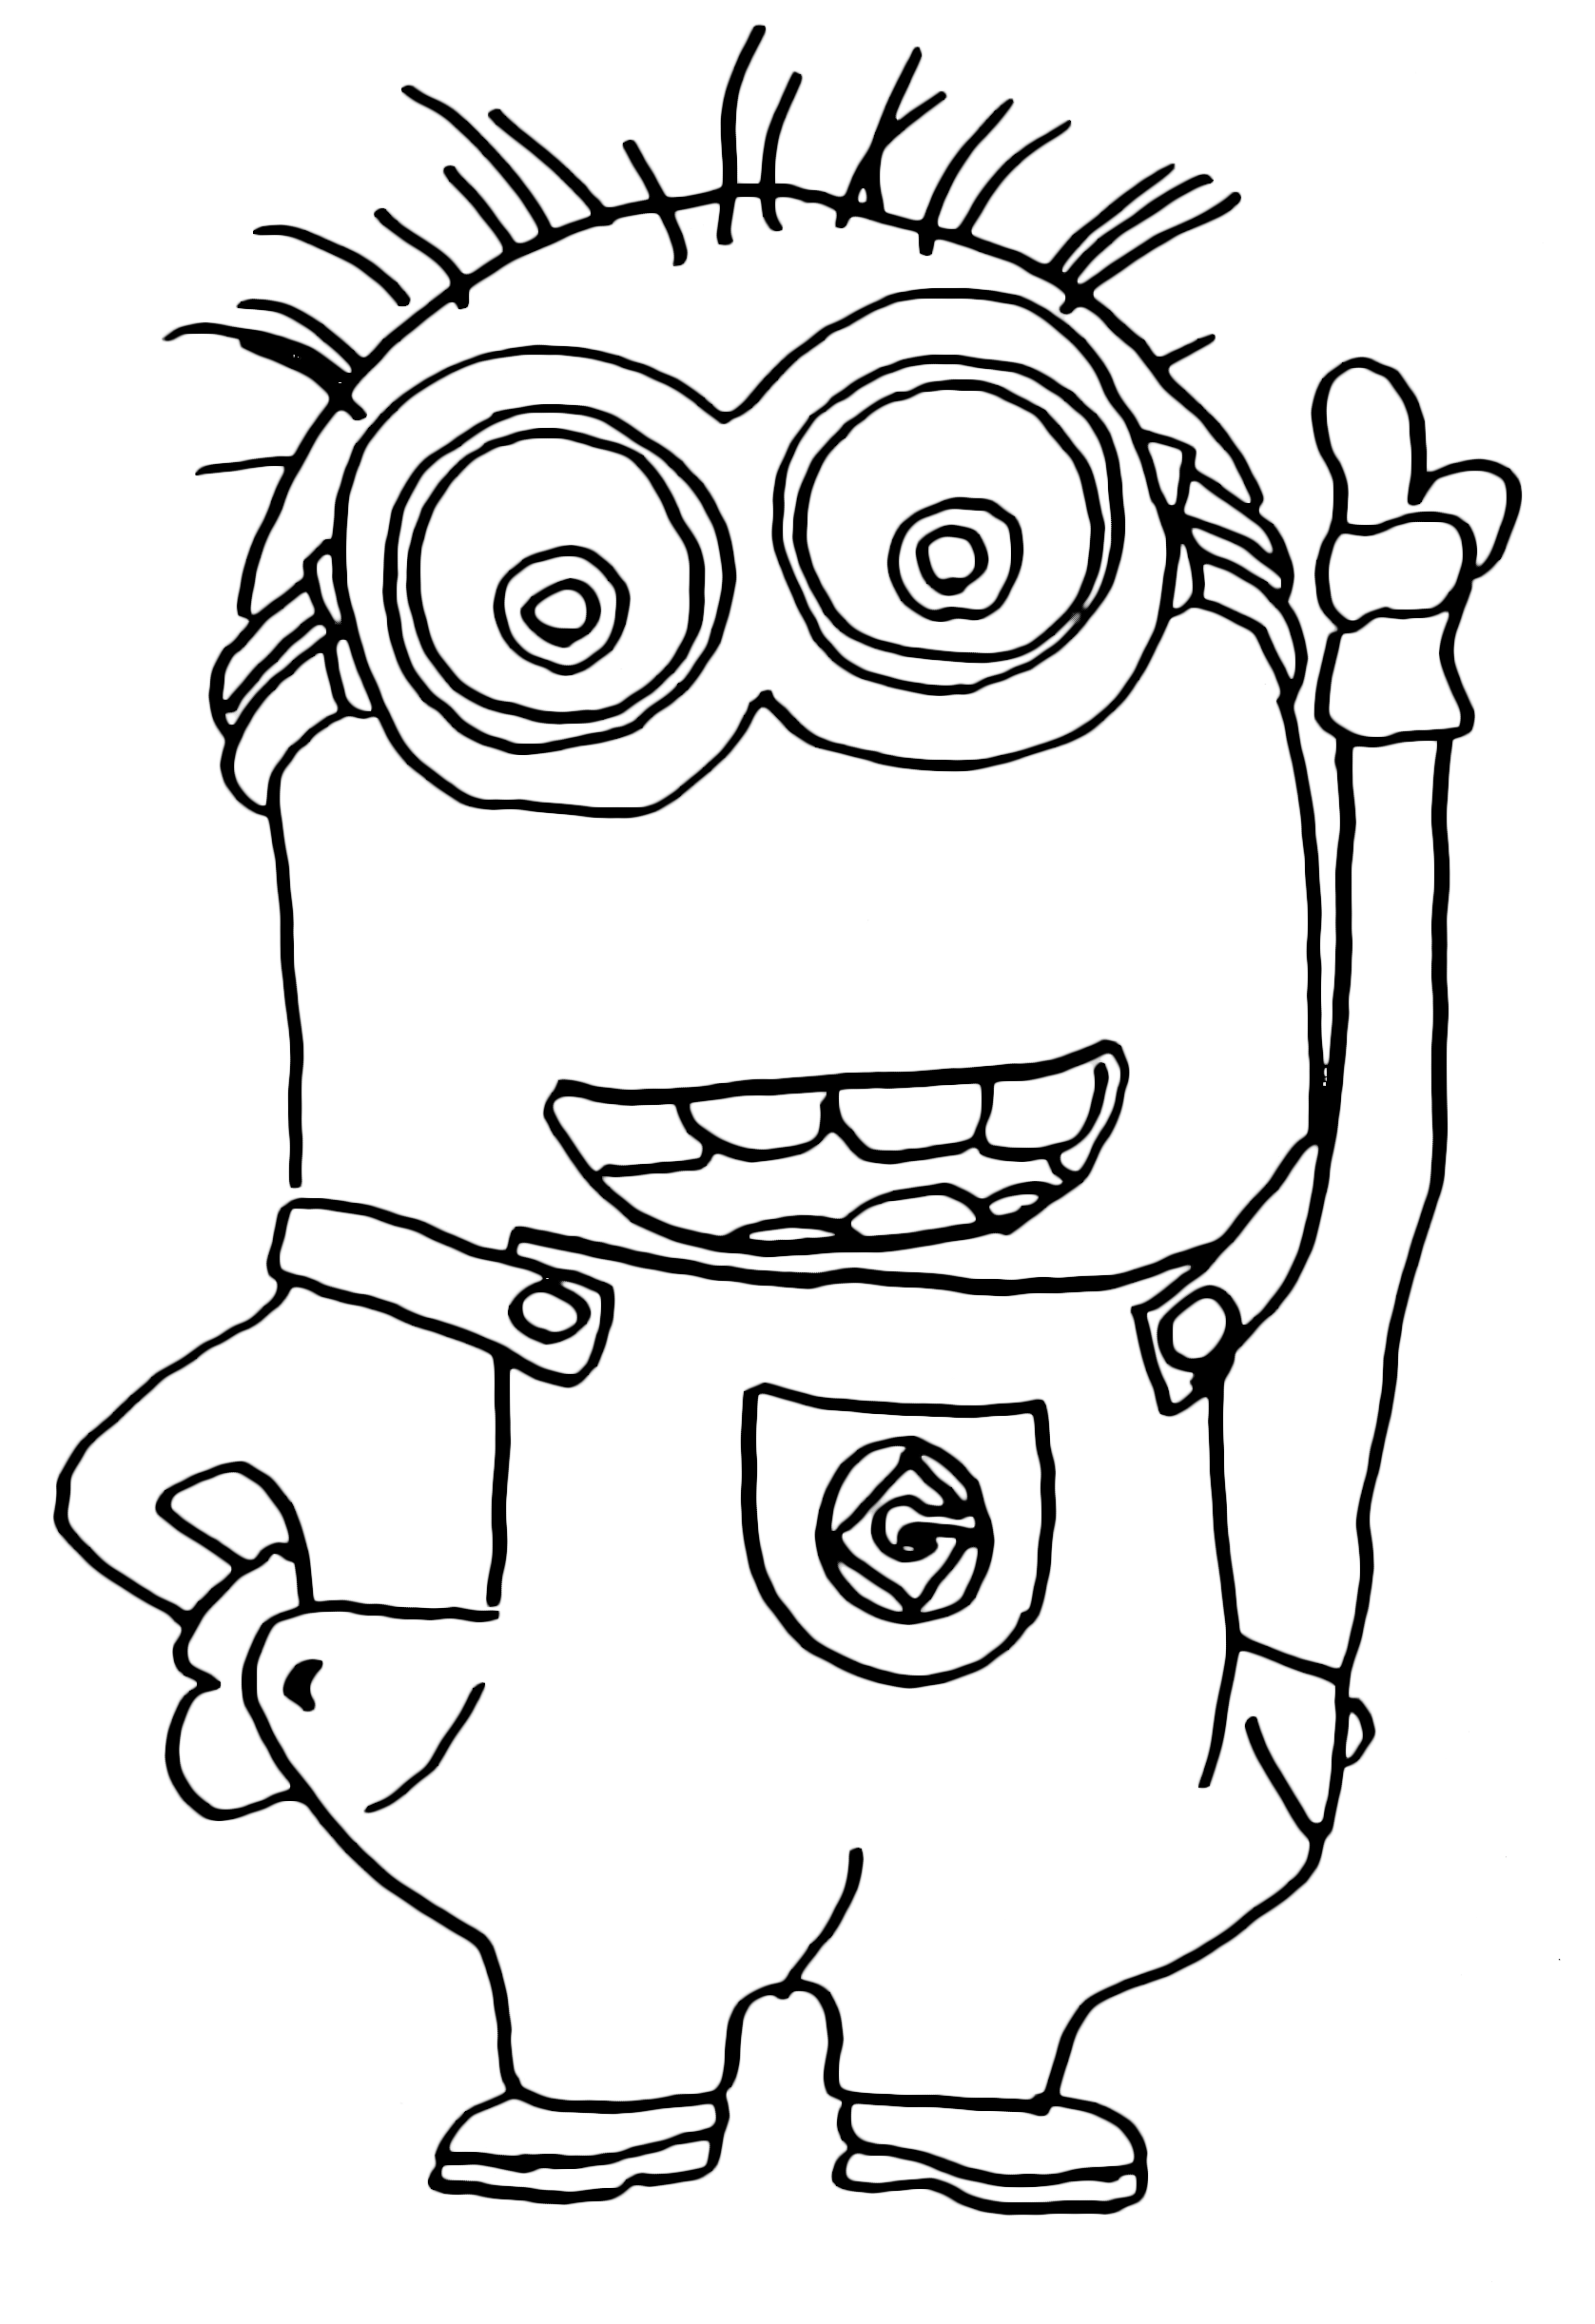 minions pdf while you wait for the upcoming movie minions have fun minions pdf